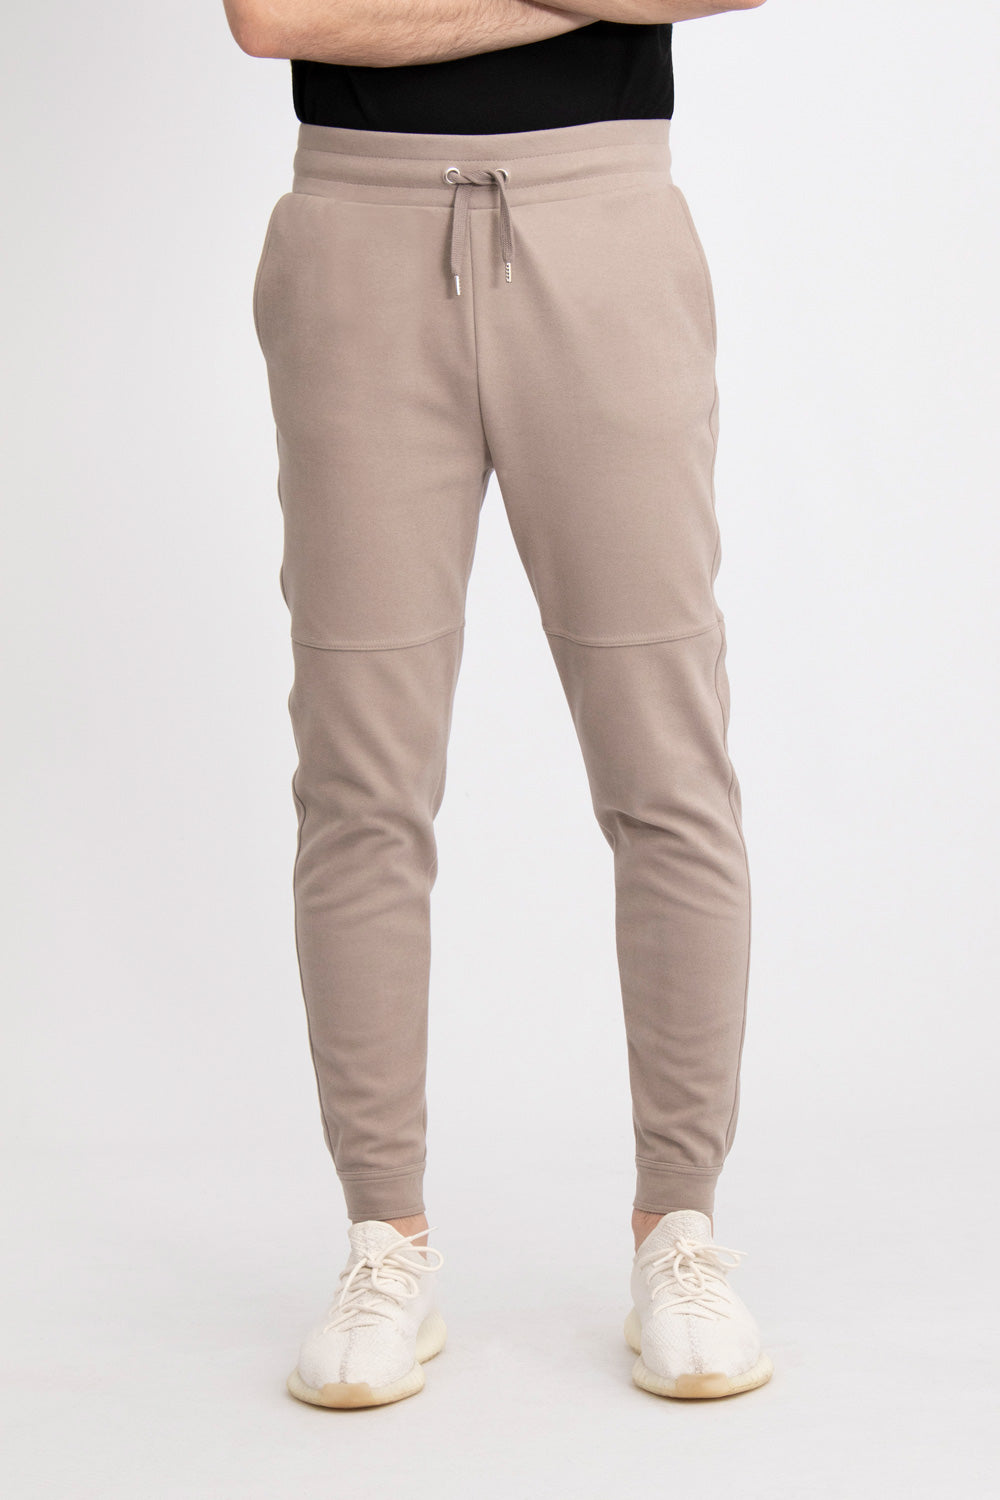 Fensh - Cuddly Buttoned Ankle Pants (Grey)